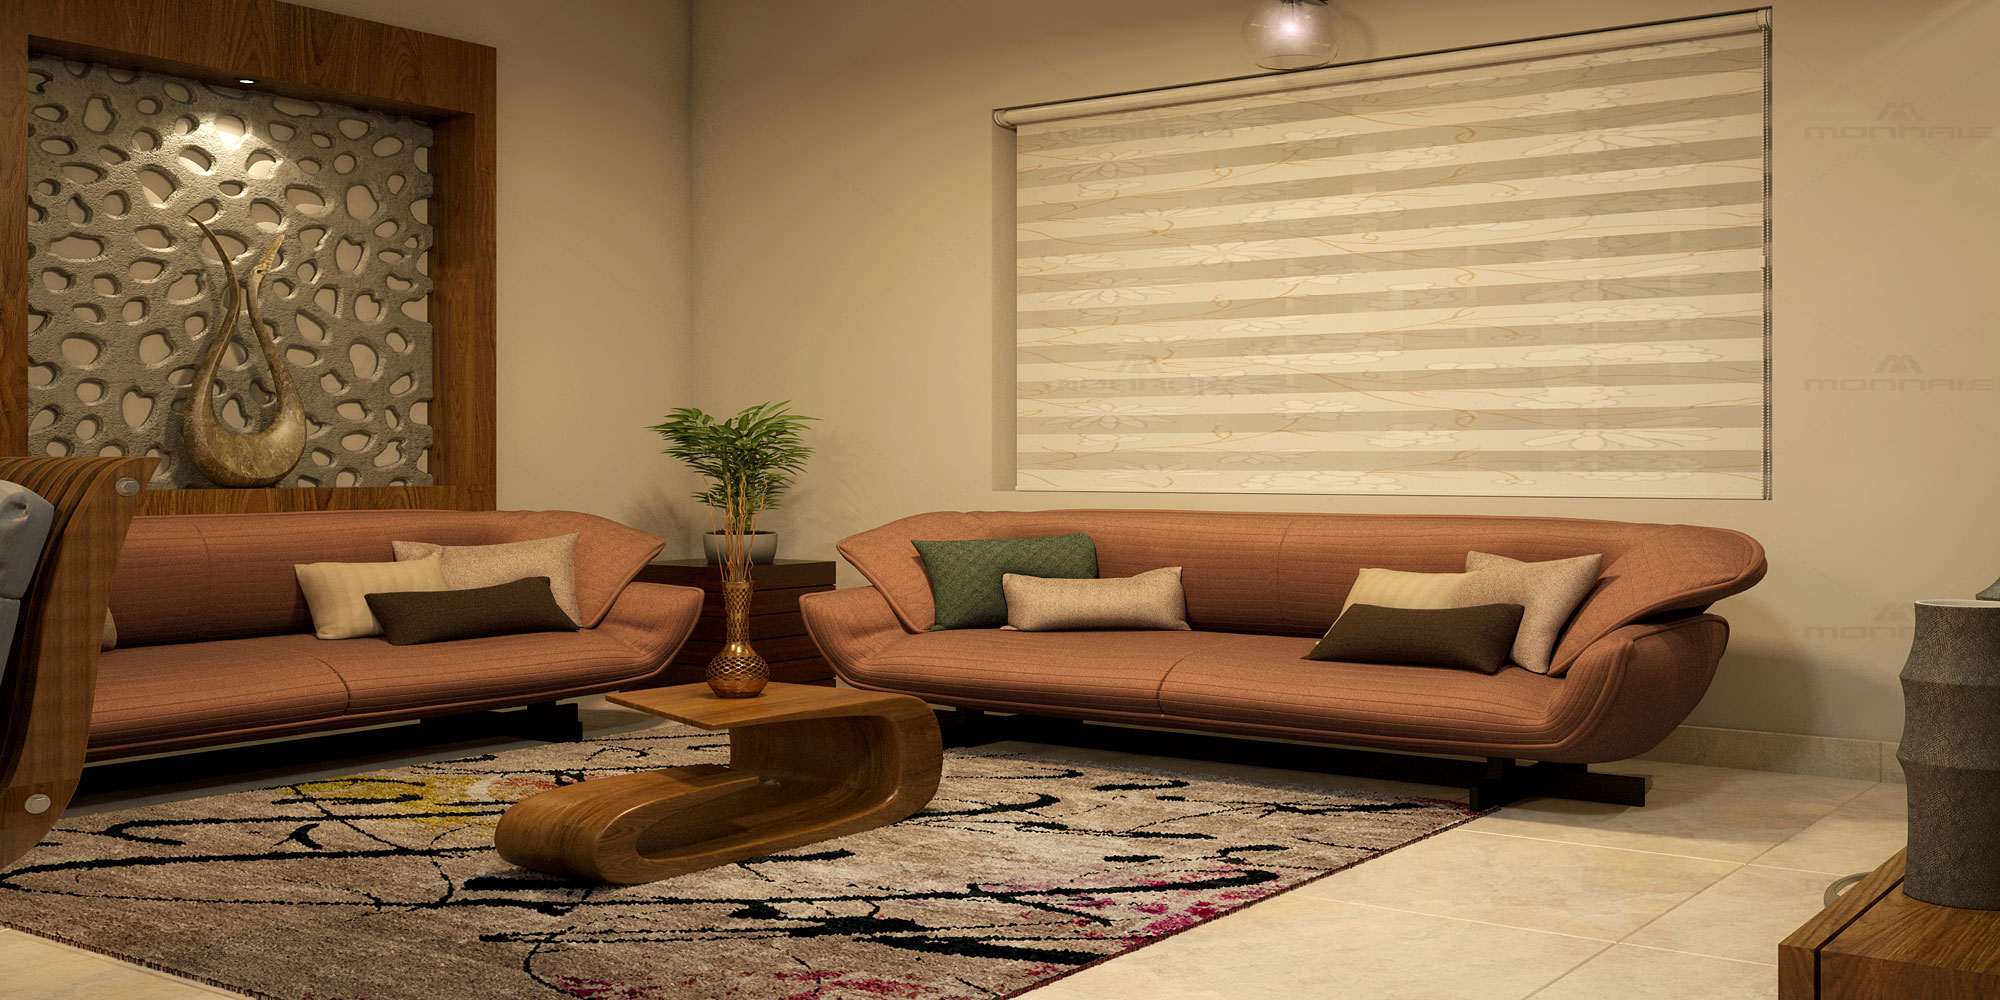 Living room interiors in Cochin